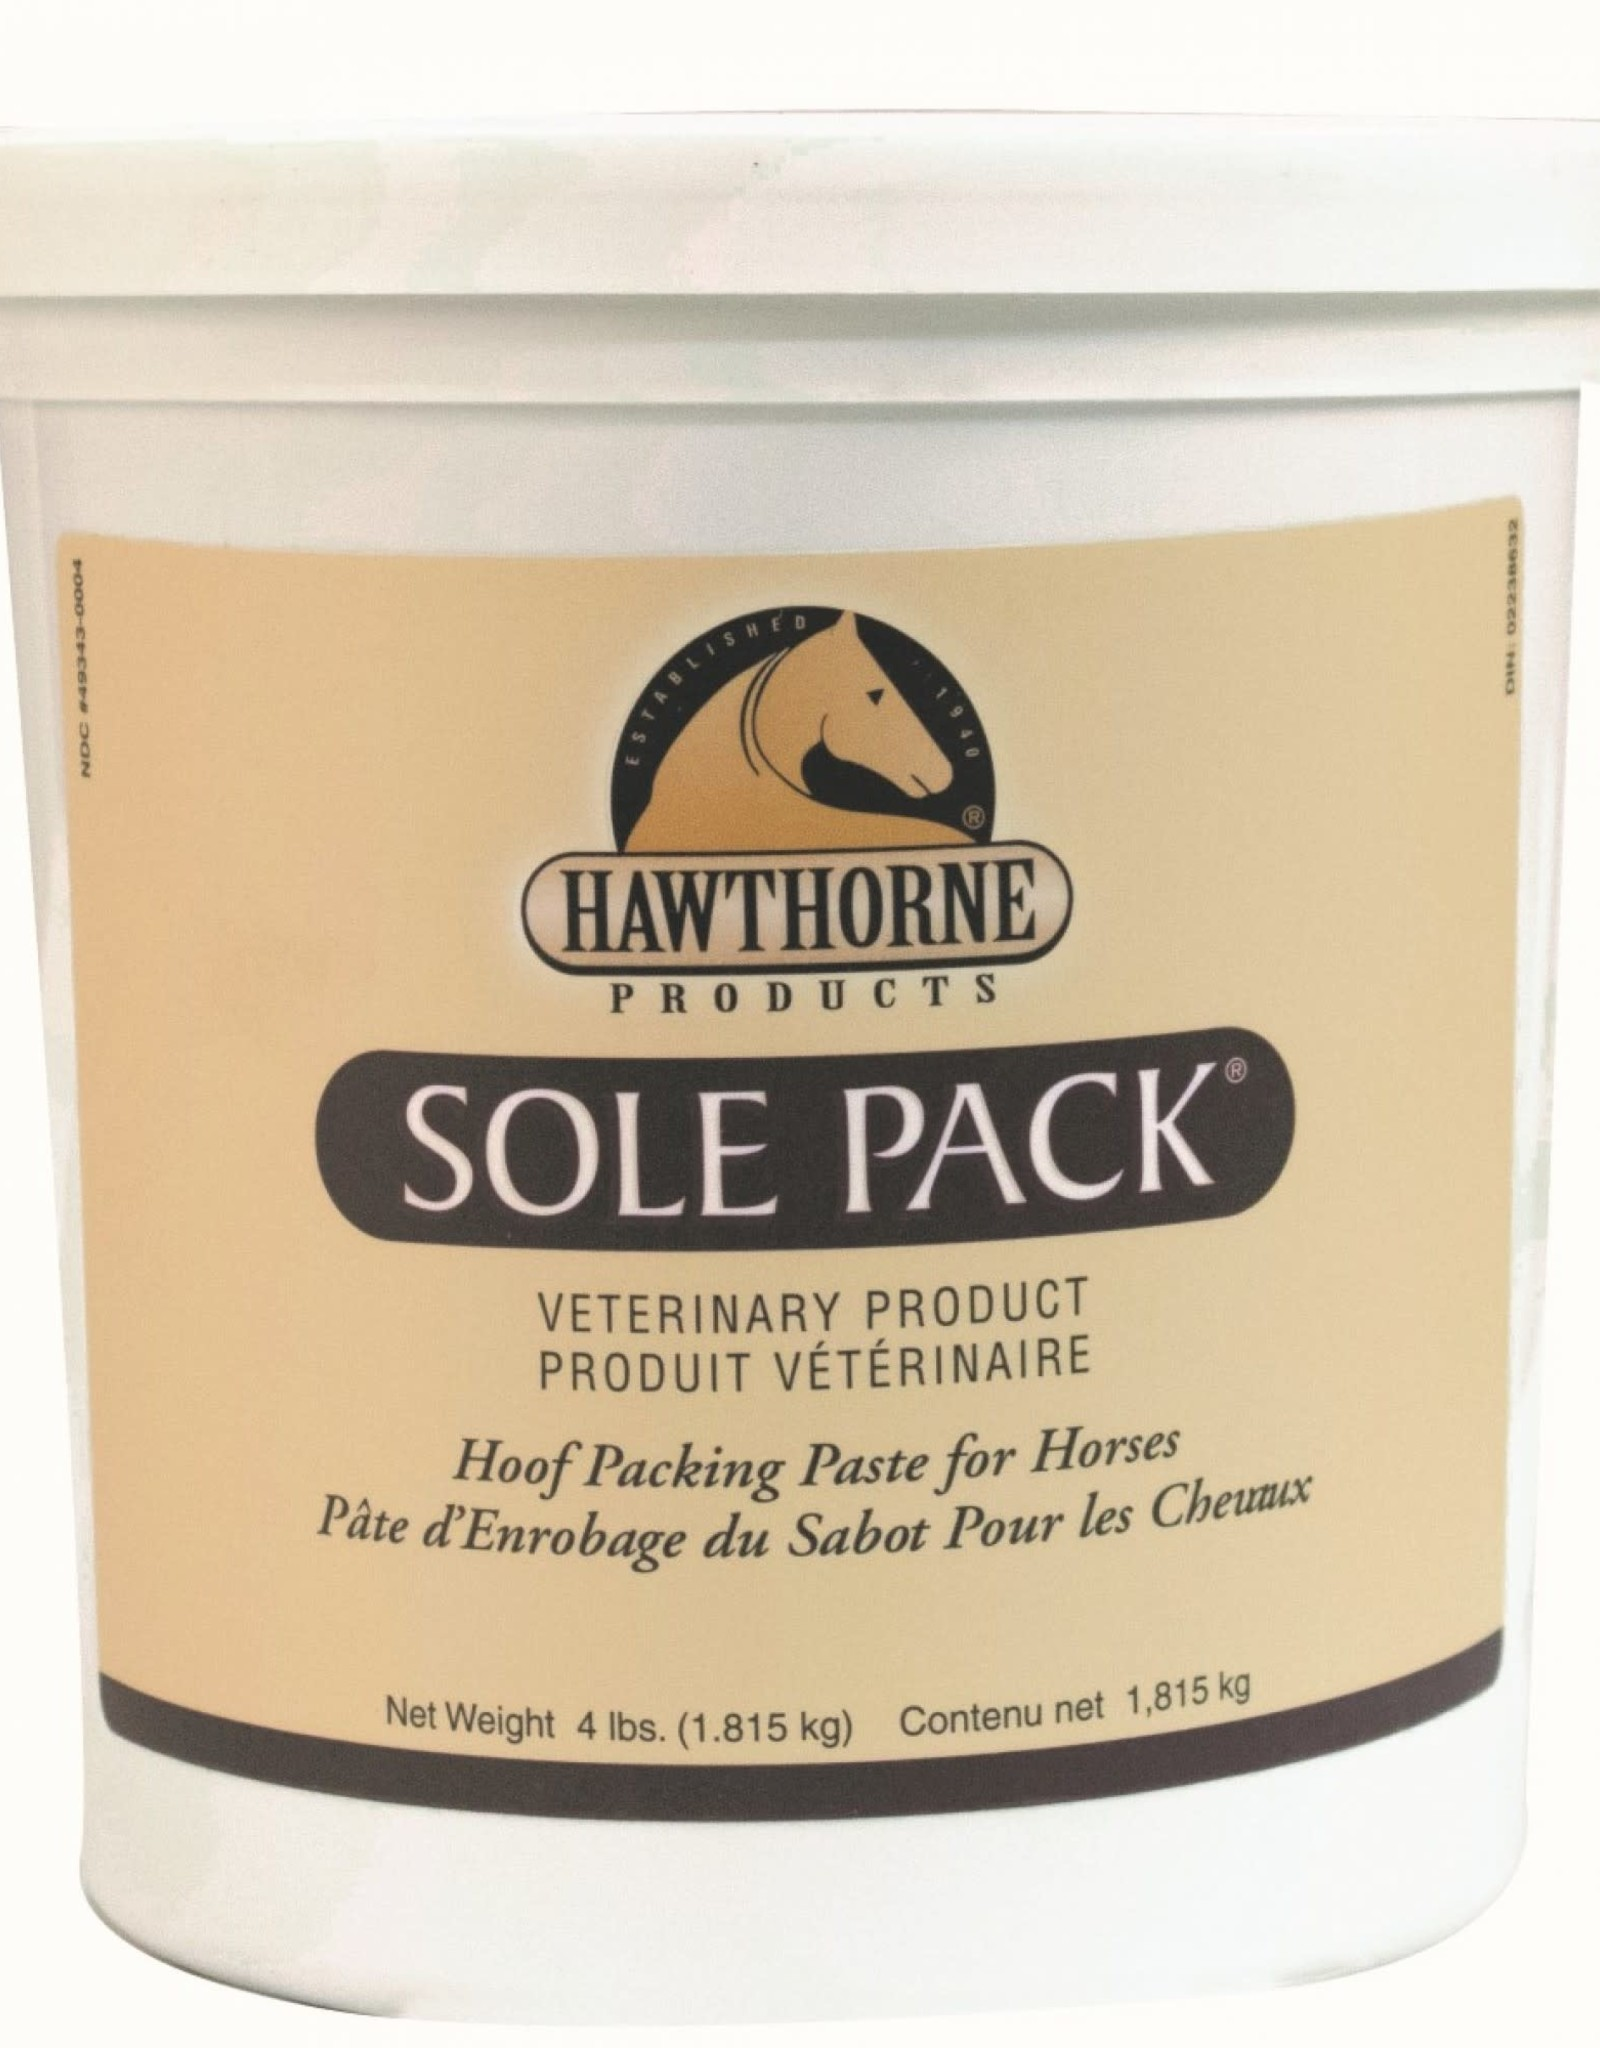 HAWTHORNE PRODUCTS INC Hawthorne Sole Pack 4lbs